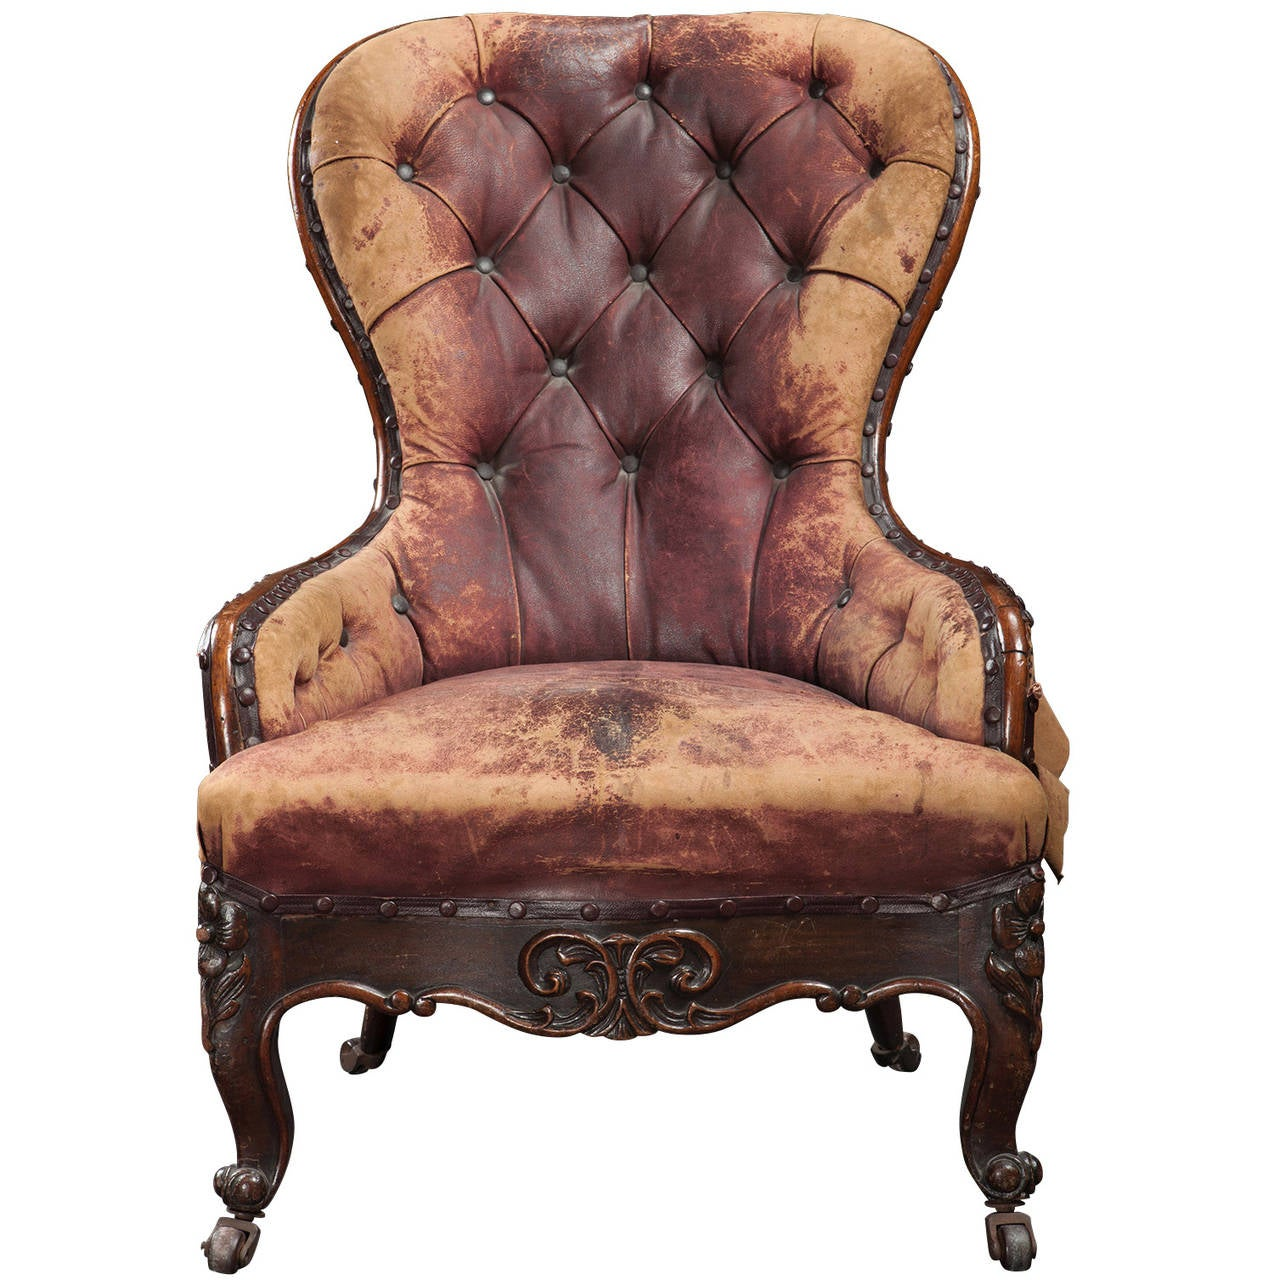 leather victorian nursing chair england circa 1 - Nursing Chair